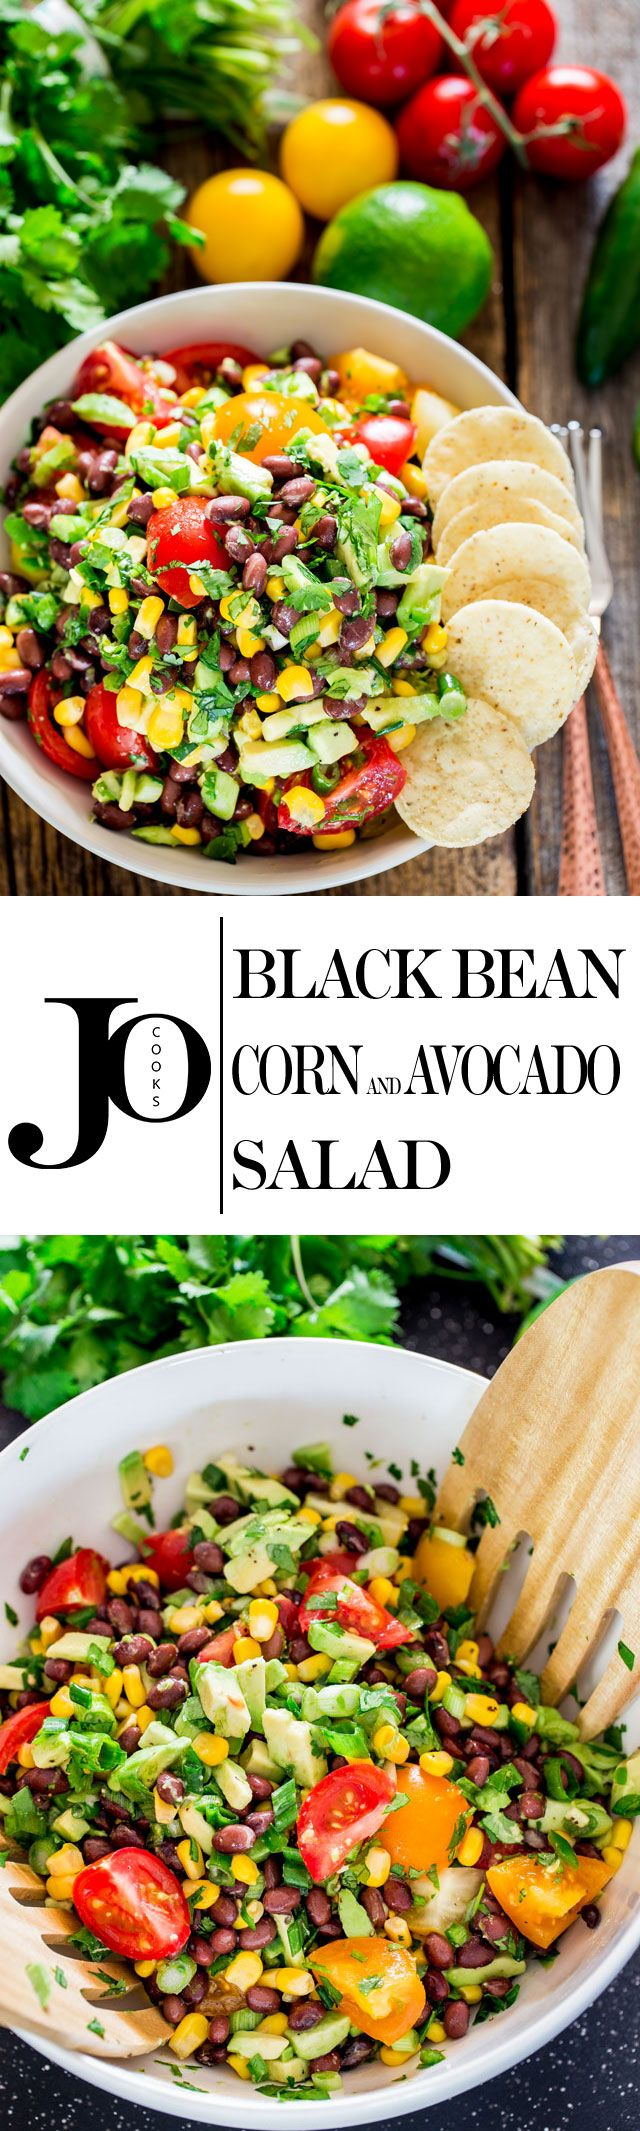 This black bean, corn and avocado salad is a crowd pleaser, colorful and full of nutrition. This salad is great served as an entree, side or even a delicious salsa.